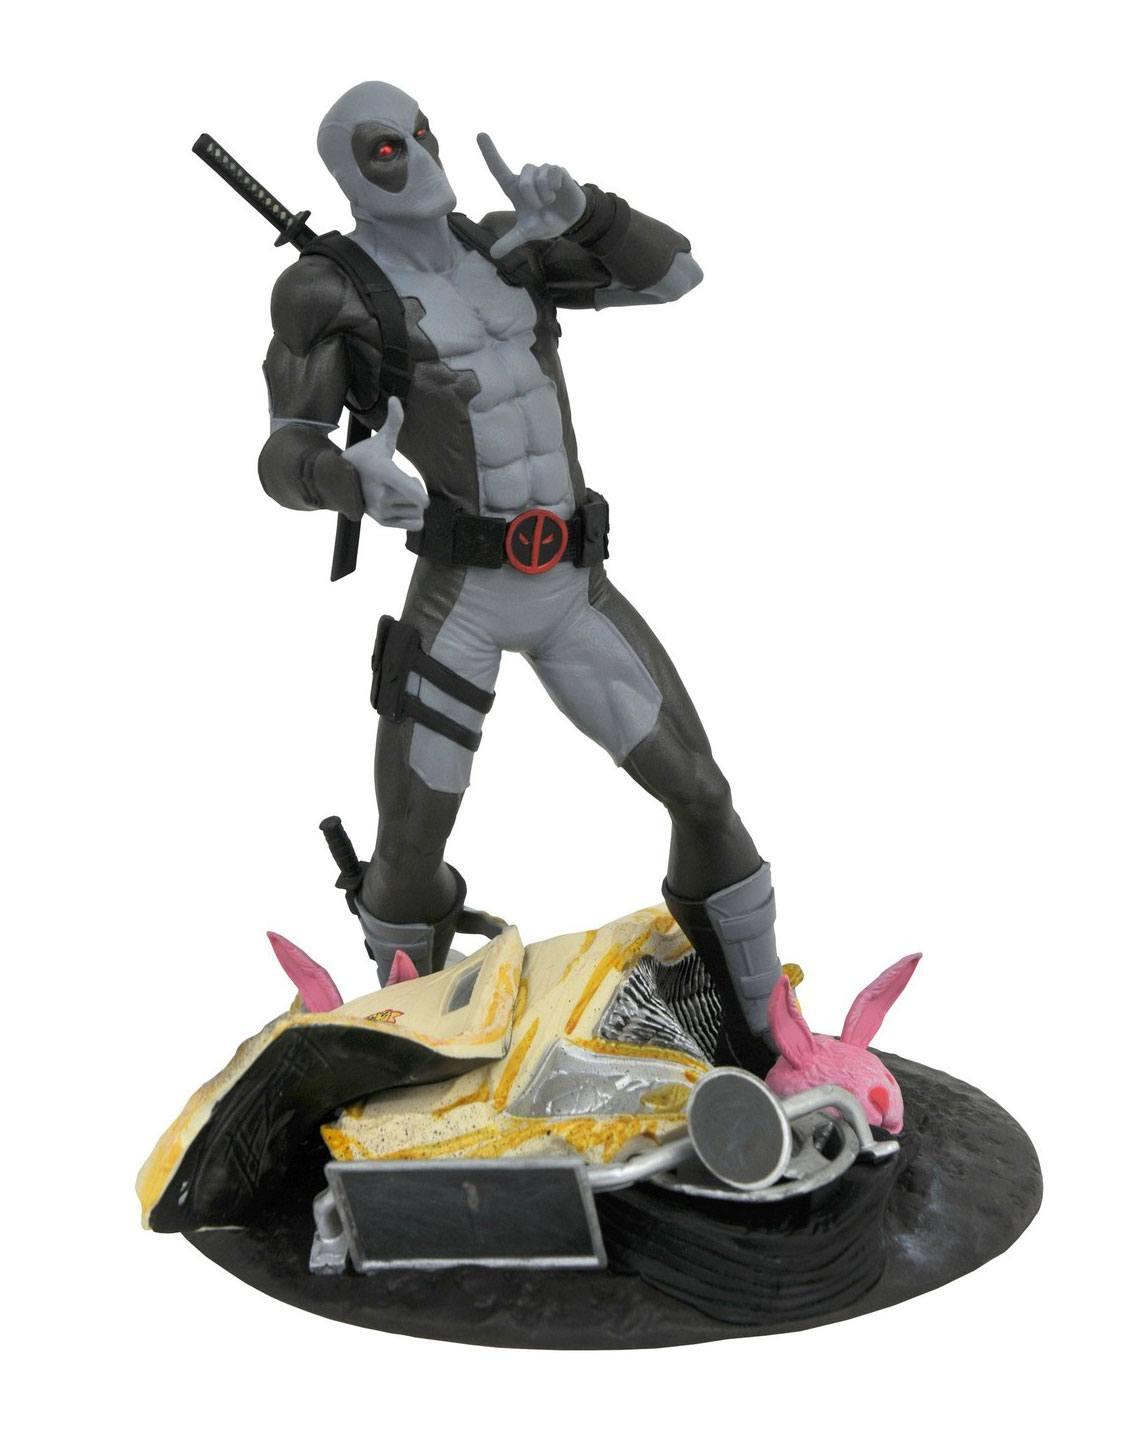 Statuette Marvel Gallery Deadpool X-Force Taco Truck SDCC 2019 Exclusive 25cm 1001 figurines